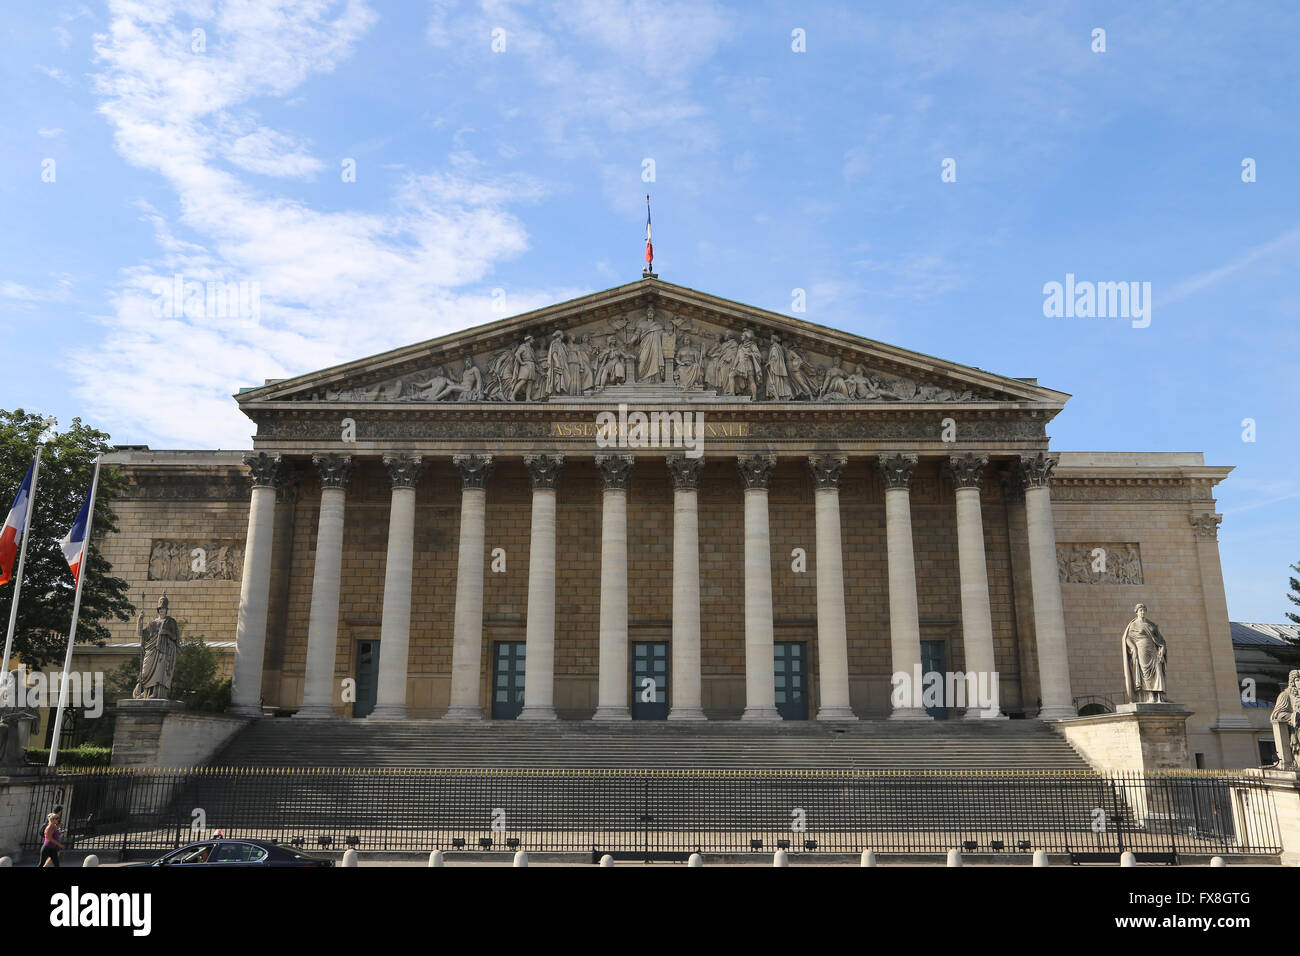 France. Paris. Facade of National Assembly (Bourbon palace), 1806-08 by Bernard Poyet. - Stock Image